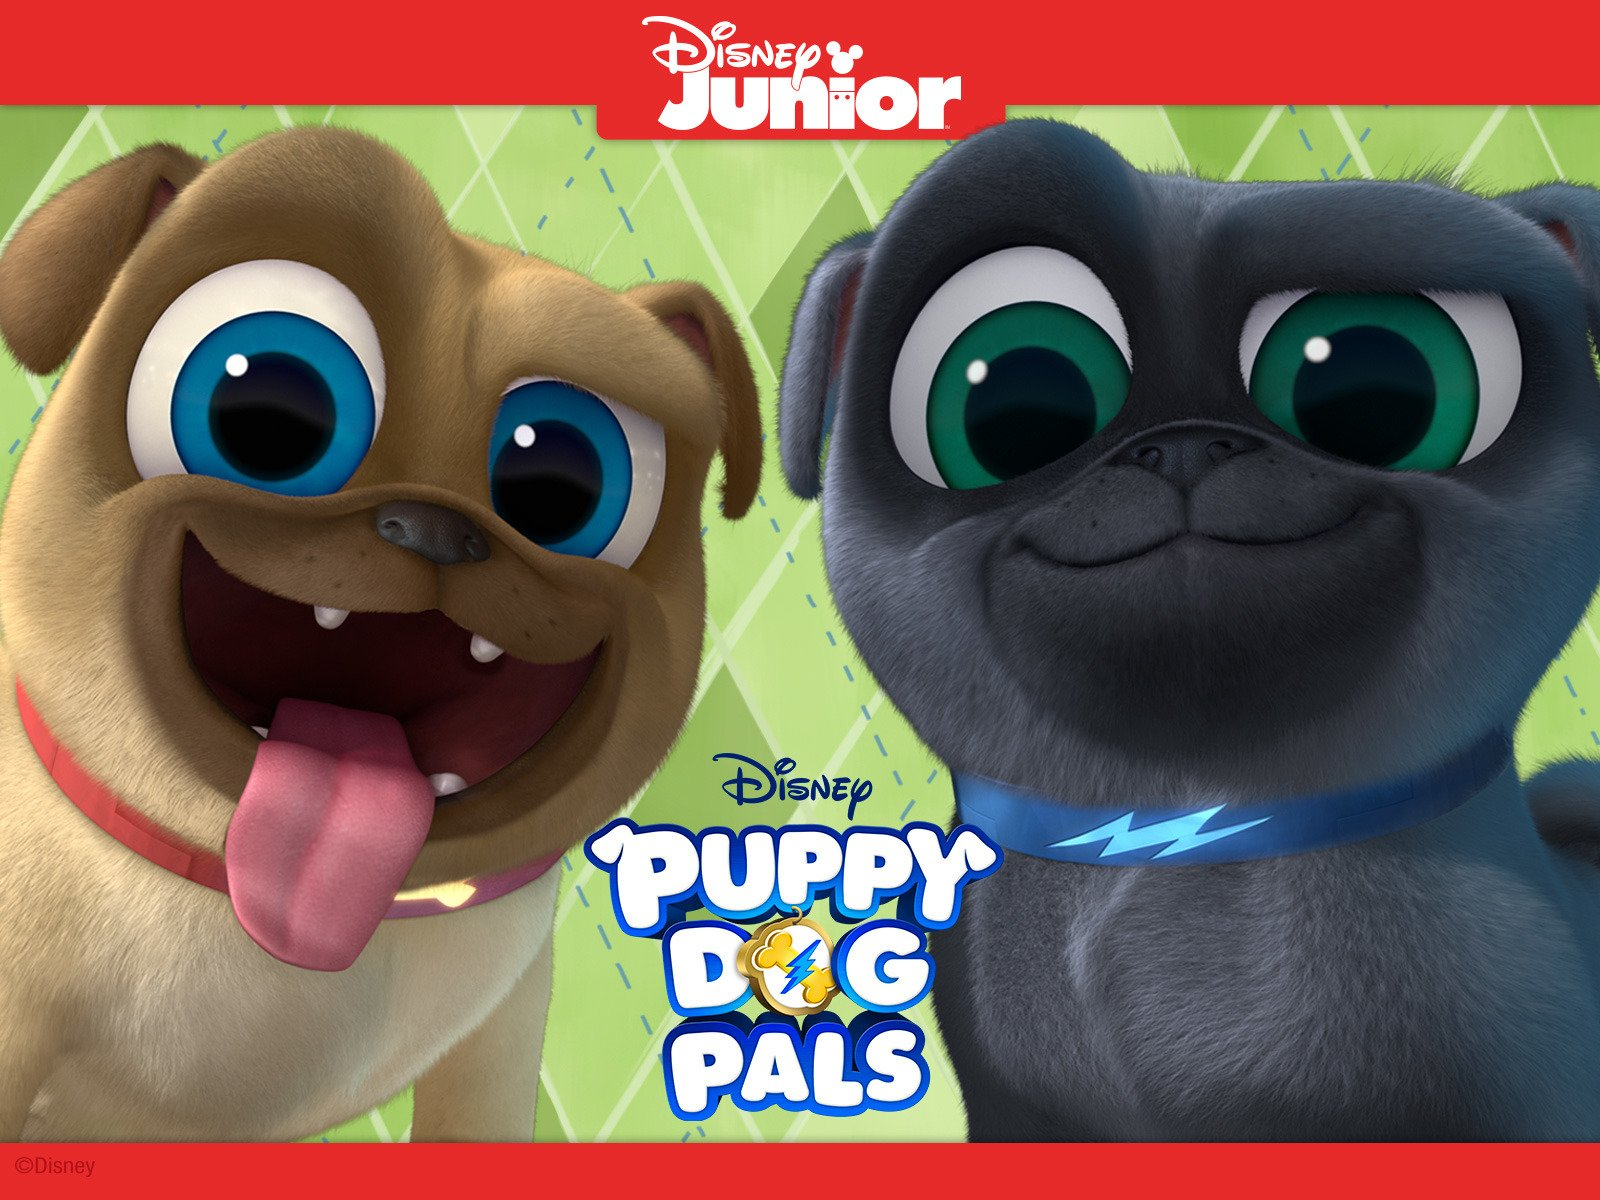 Amazon.com: Puppy Dog Pals Volume 1: Leslie David Baker, Issac Ryan Brown,  Jessica DiCicco